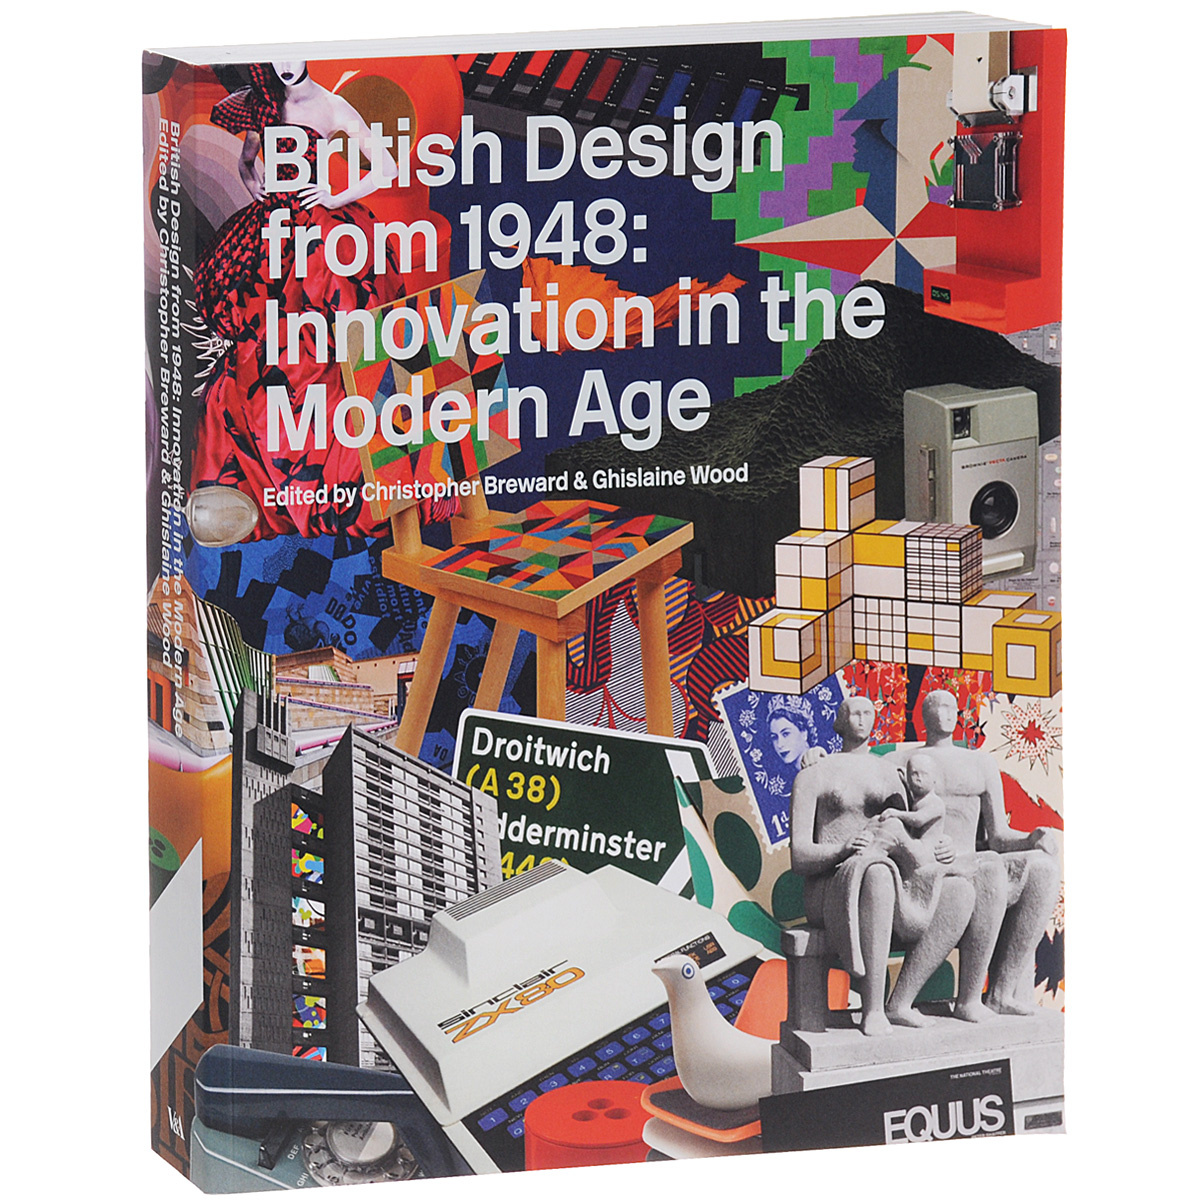 British Design from 1948: Innovation in the Modern Age #1